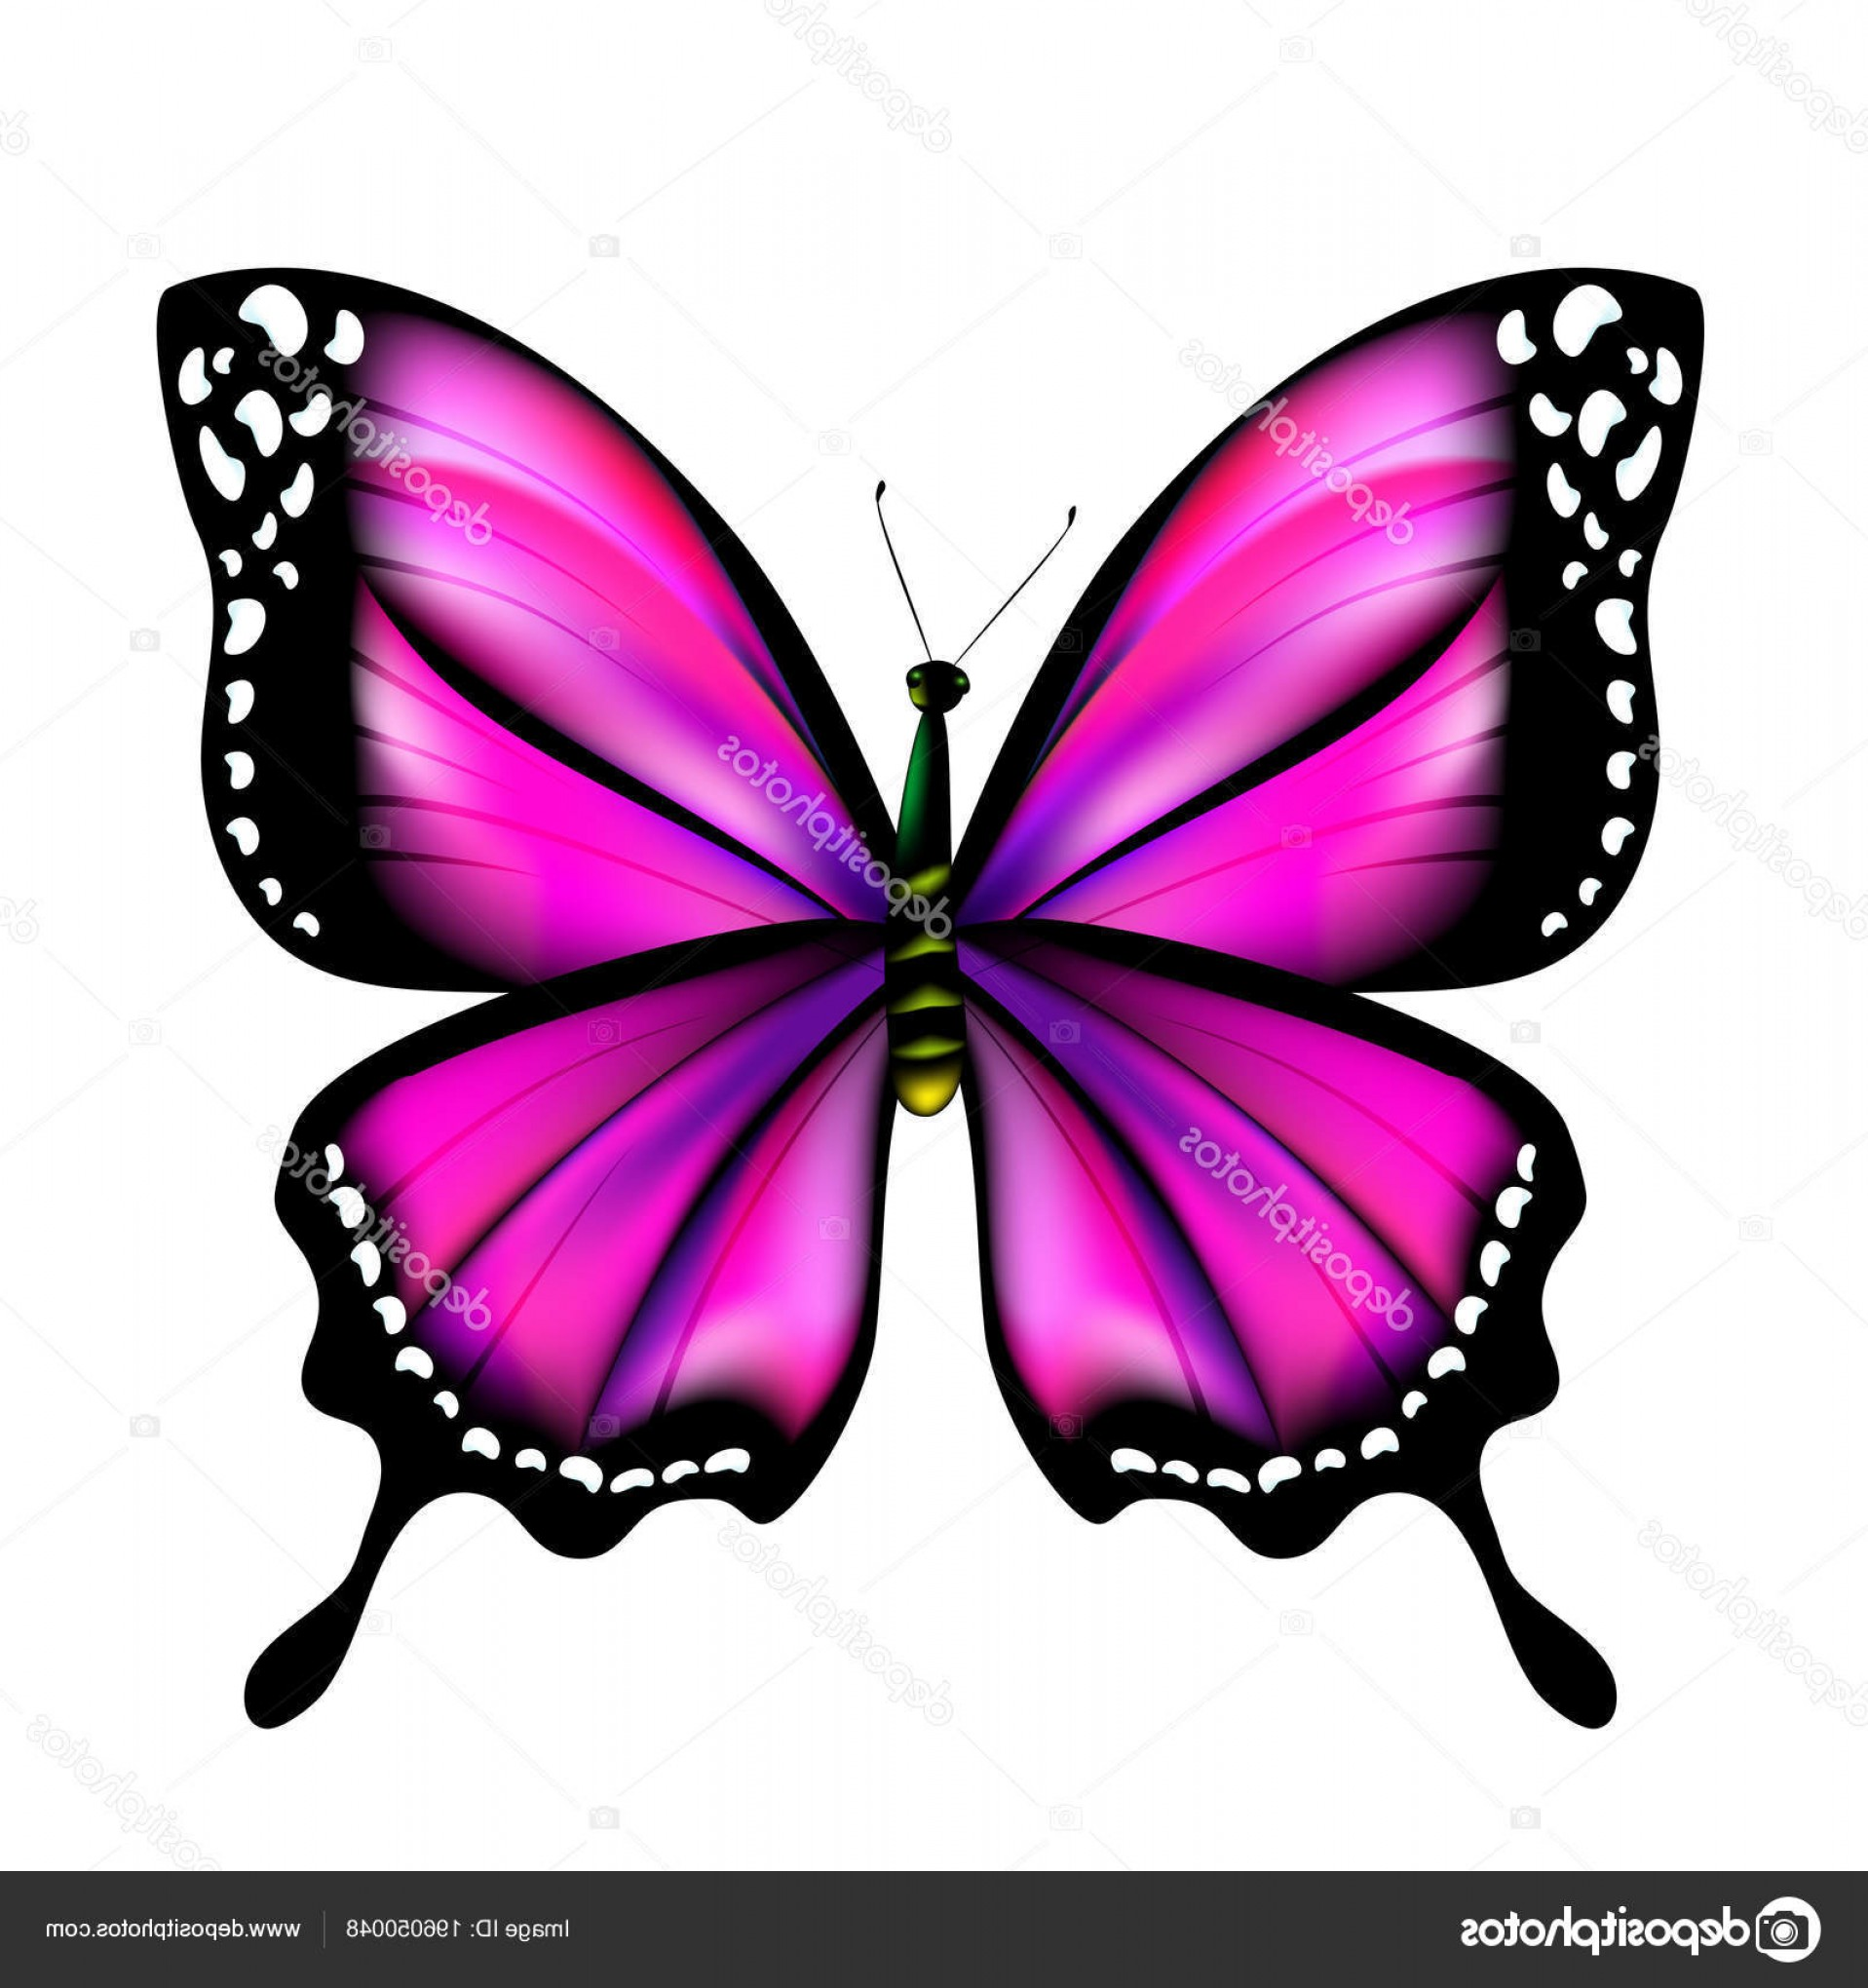 Real Butterfly Vector: Stock Illustration Beautiful Purple Butterfly Isolated White